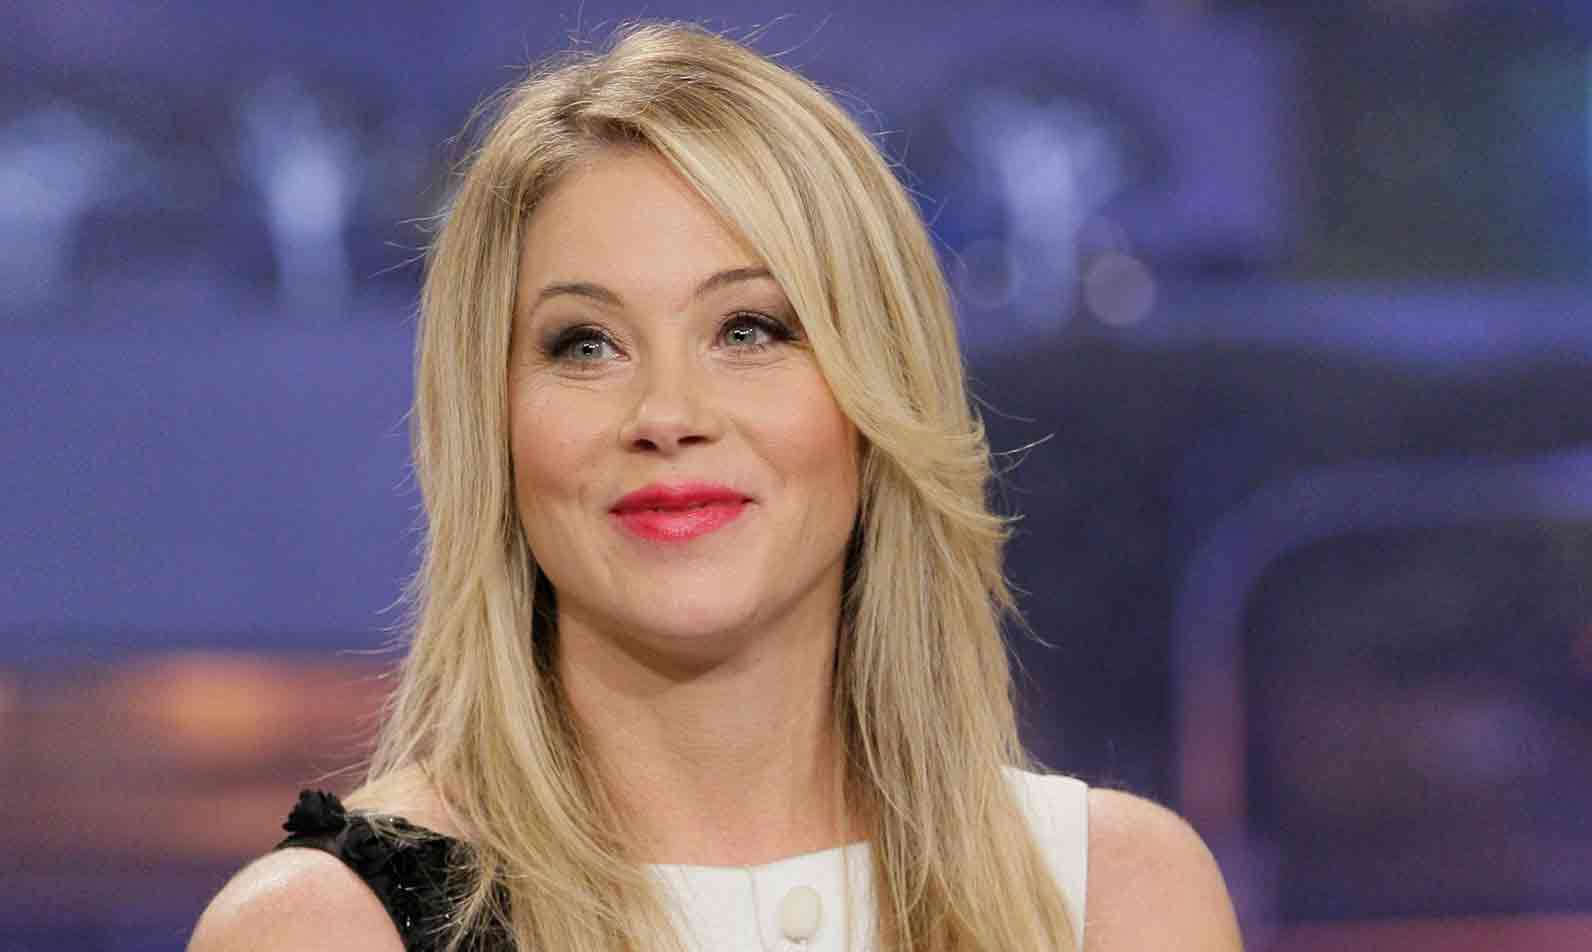 Nude Pictures Of Christina Applegate